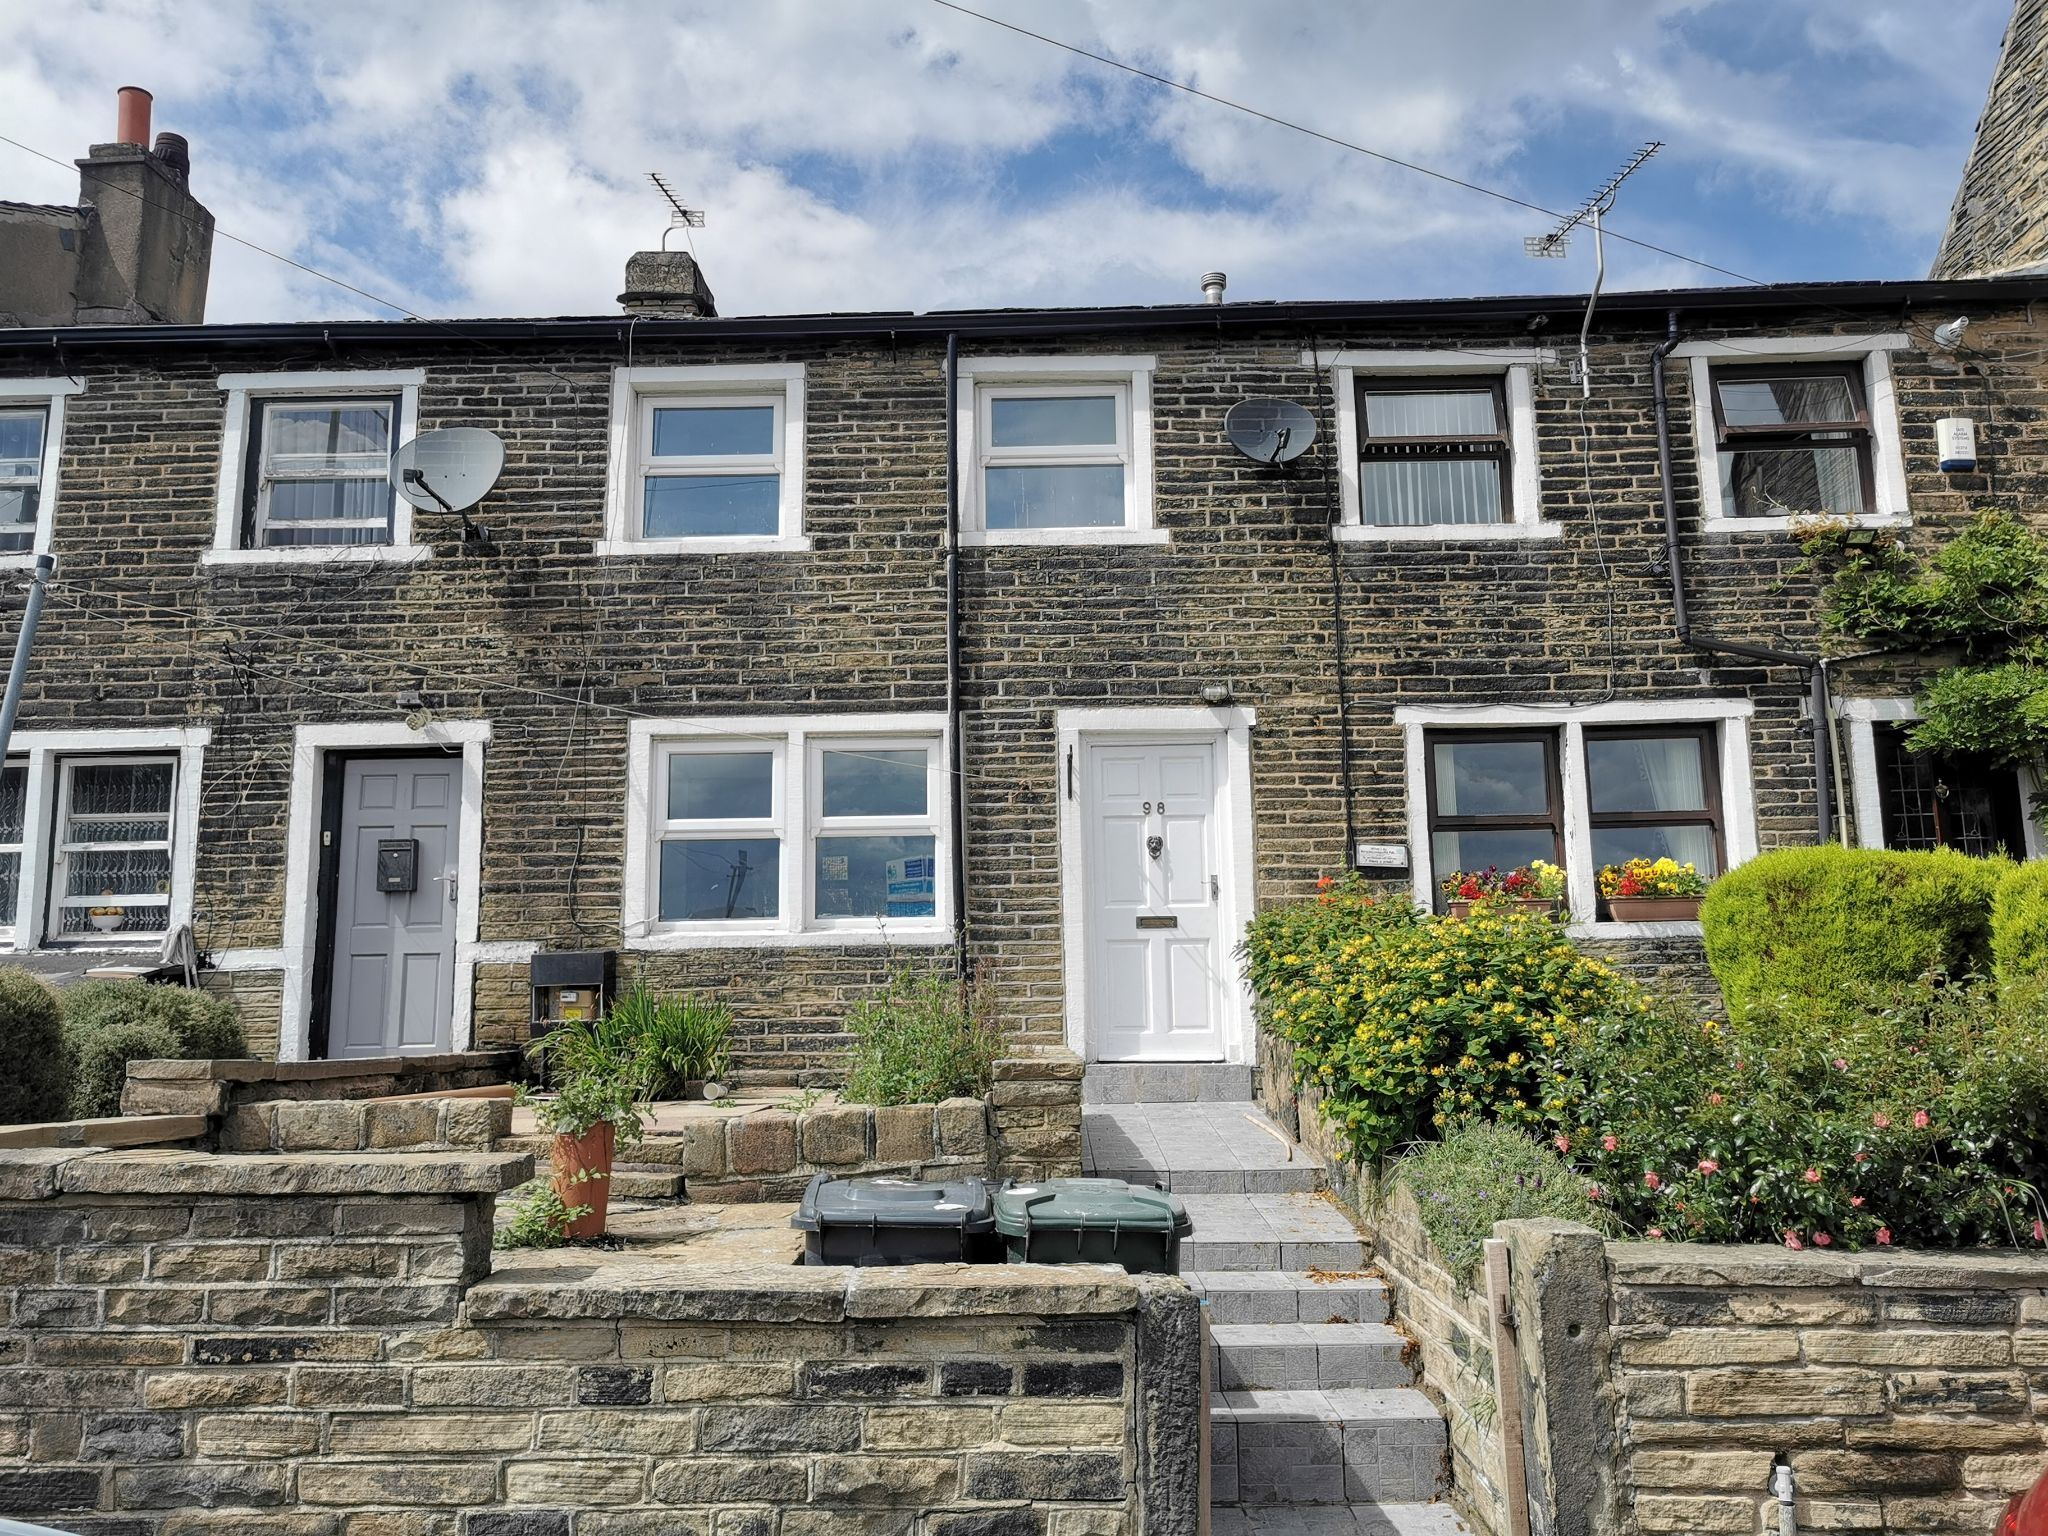 2 bedroom cottage house For Sale in Bradford - Photograph 1.